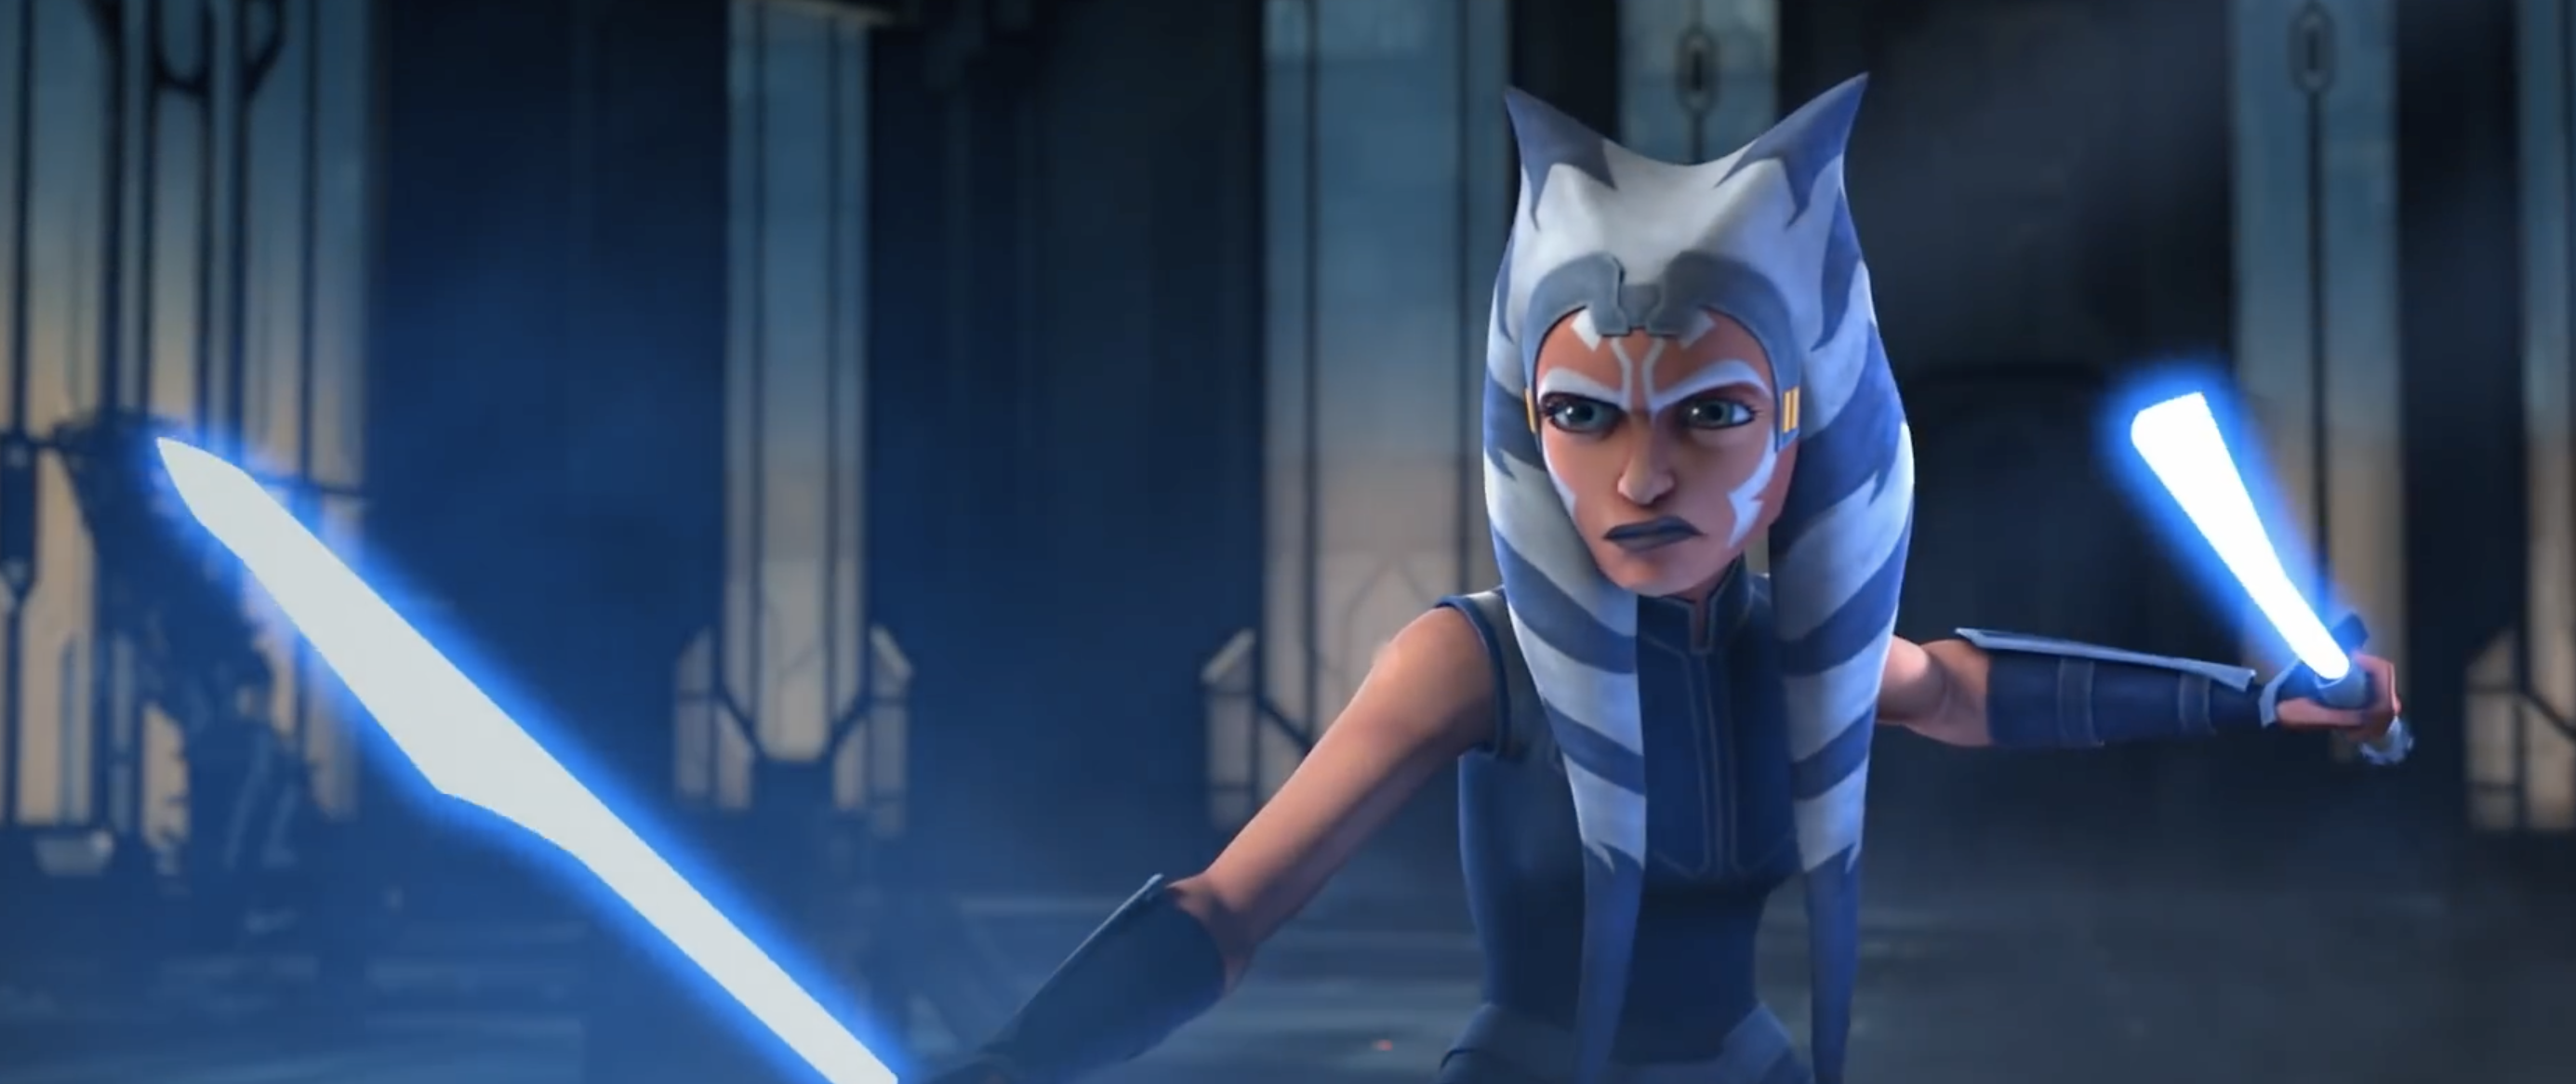 ahsoka with two blue lightsabers, ready to THROW DOWN BITCH